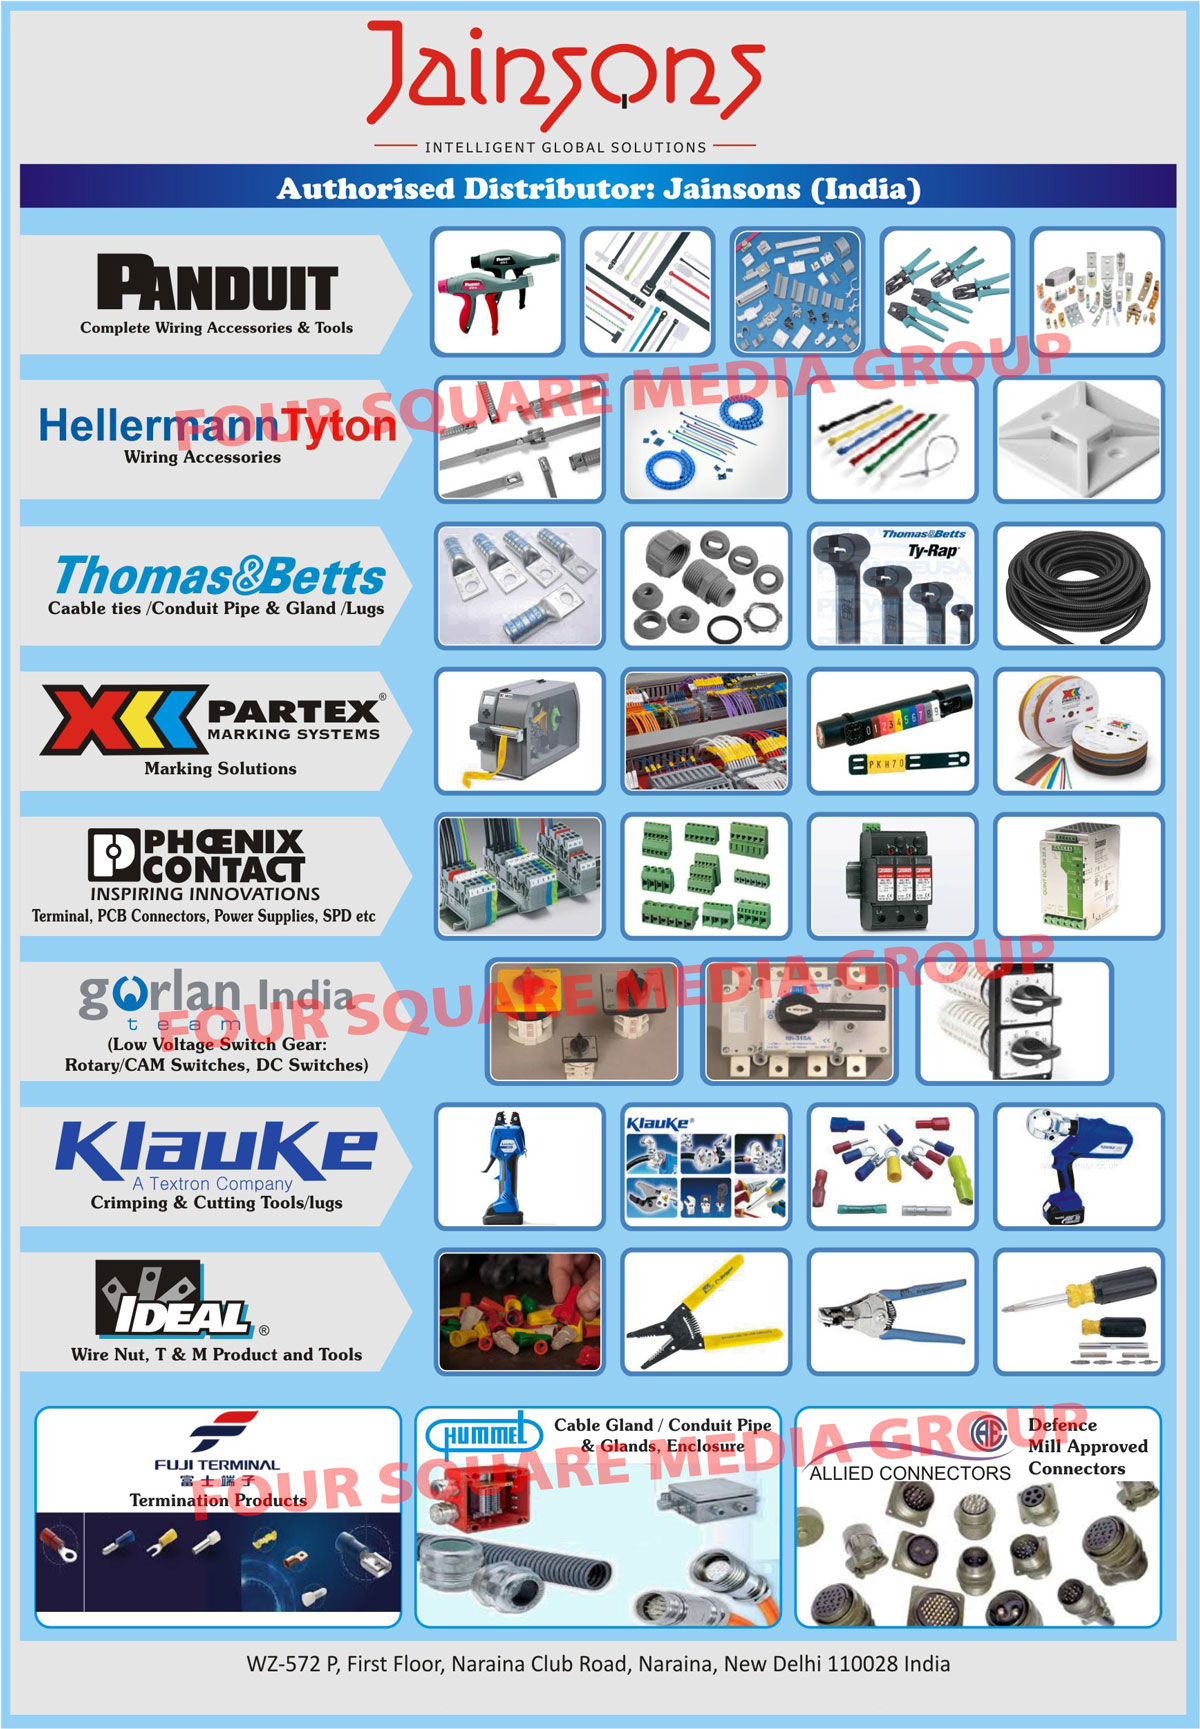 Wiring Accessories Tools Cable Ties Jainsons India Conduit Pipes Glands